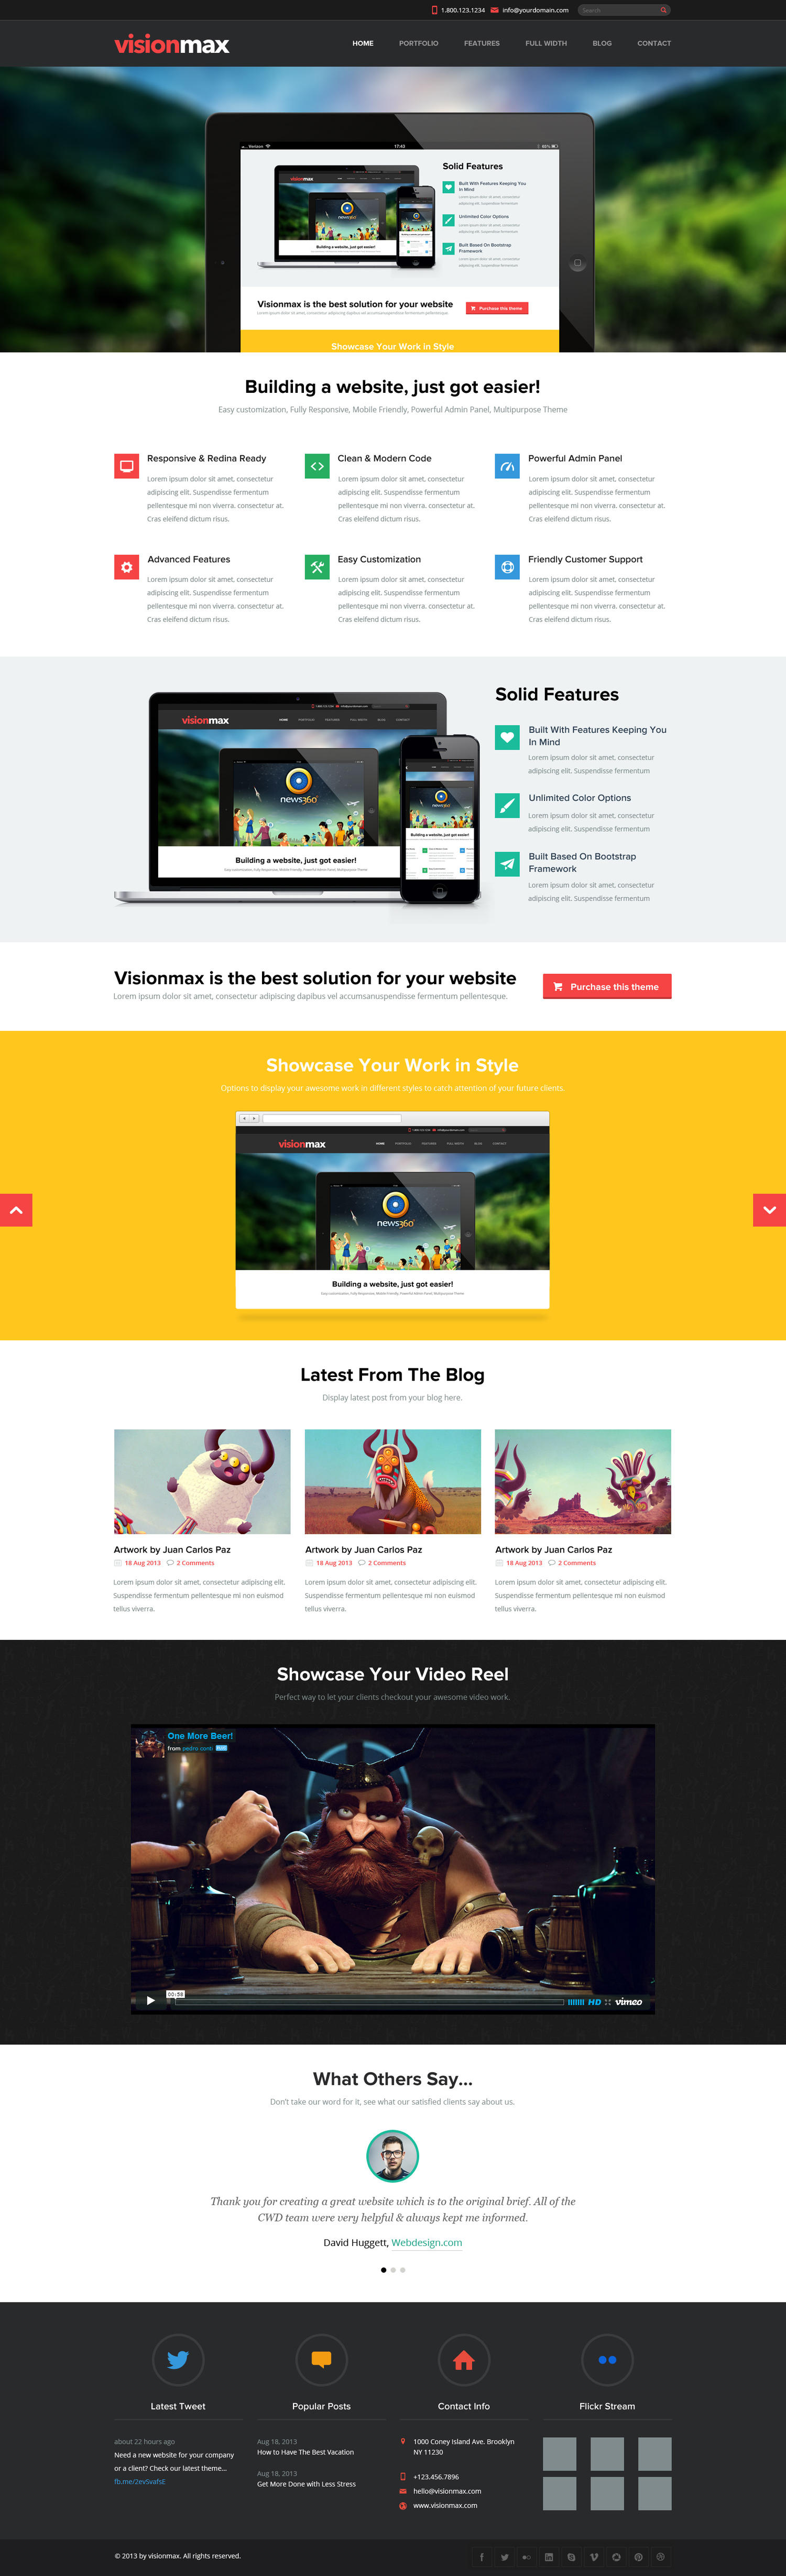 Responsive Website Designs by nasirwd - 52493